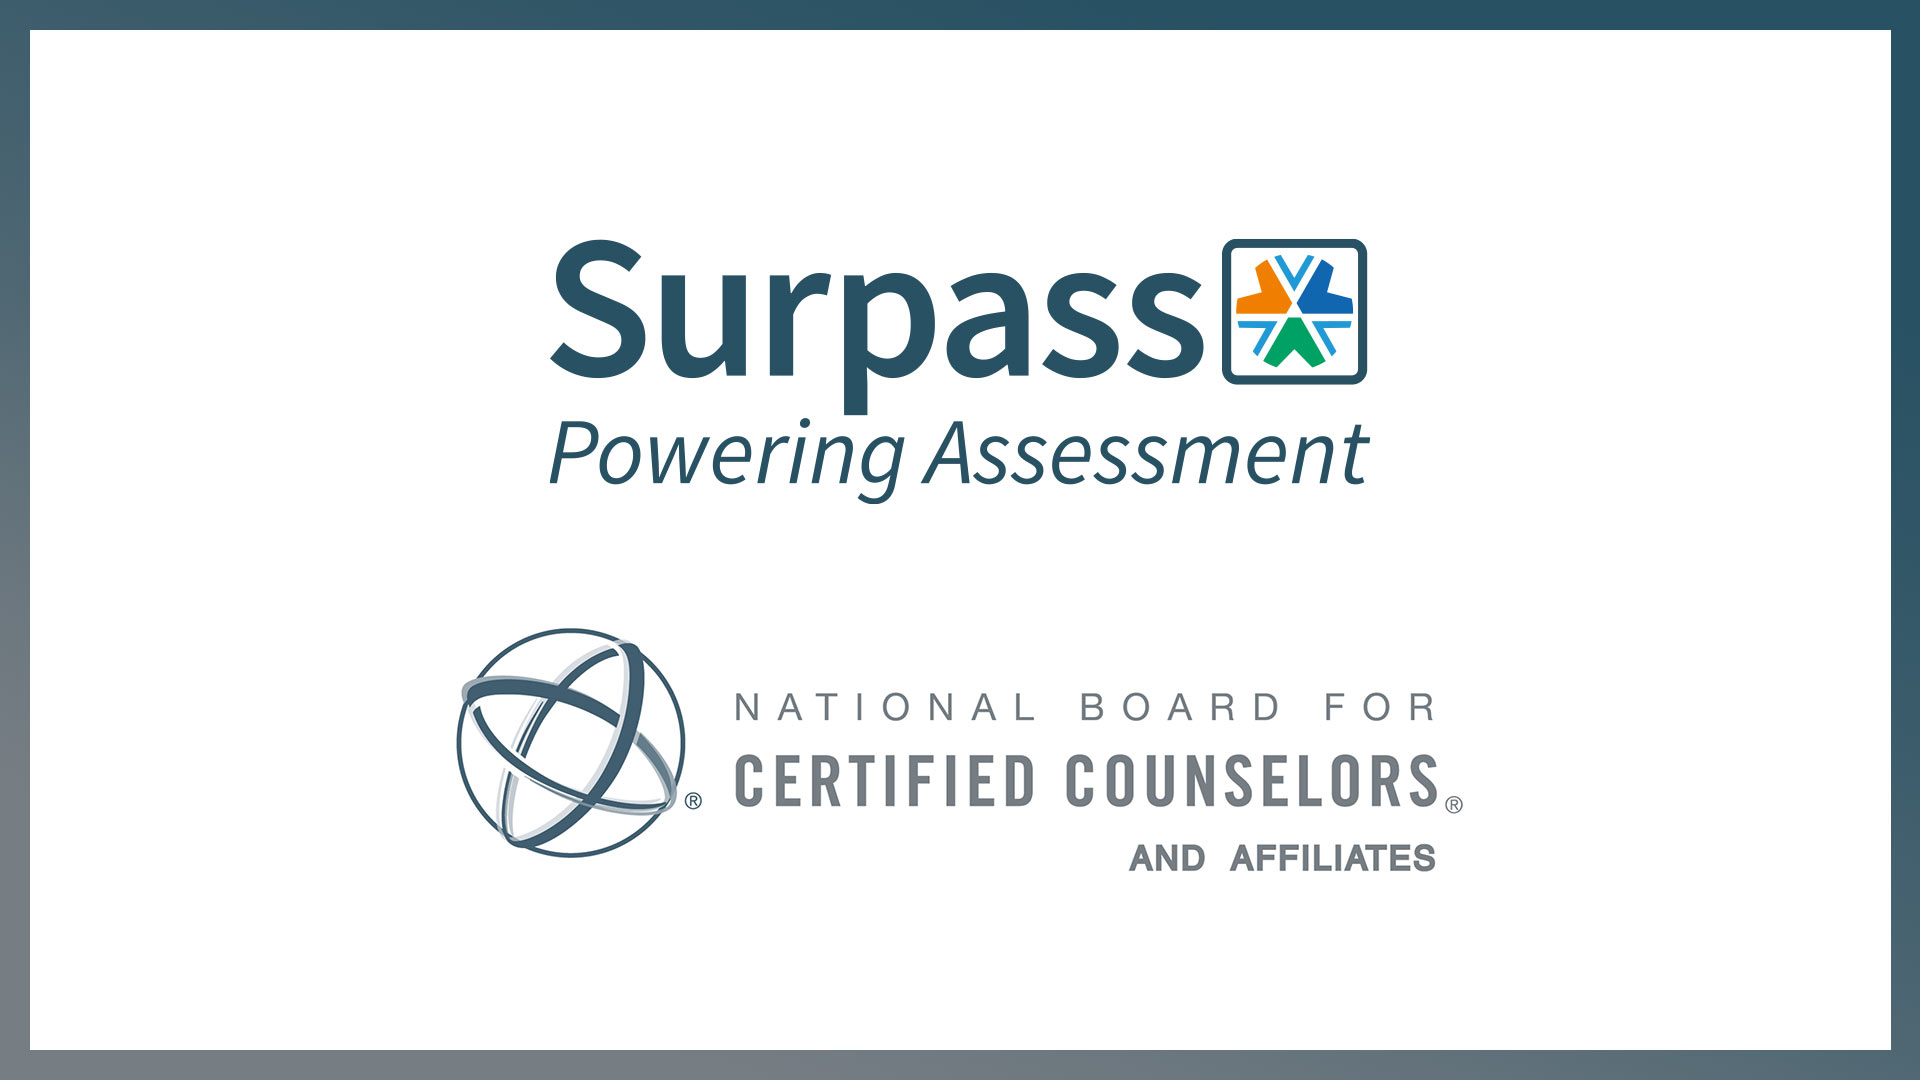 New community member: National Board for Certified Counselors